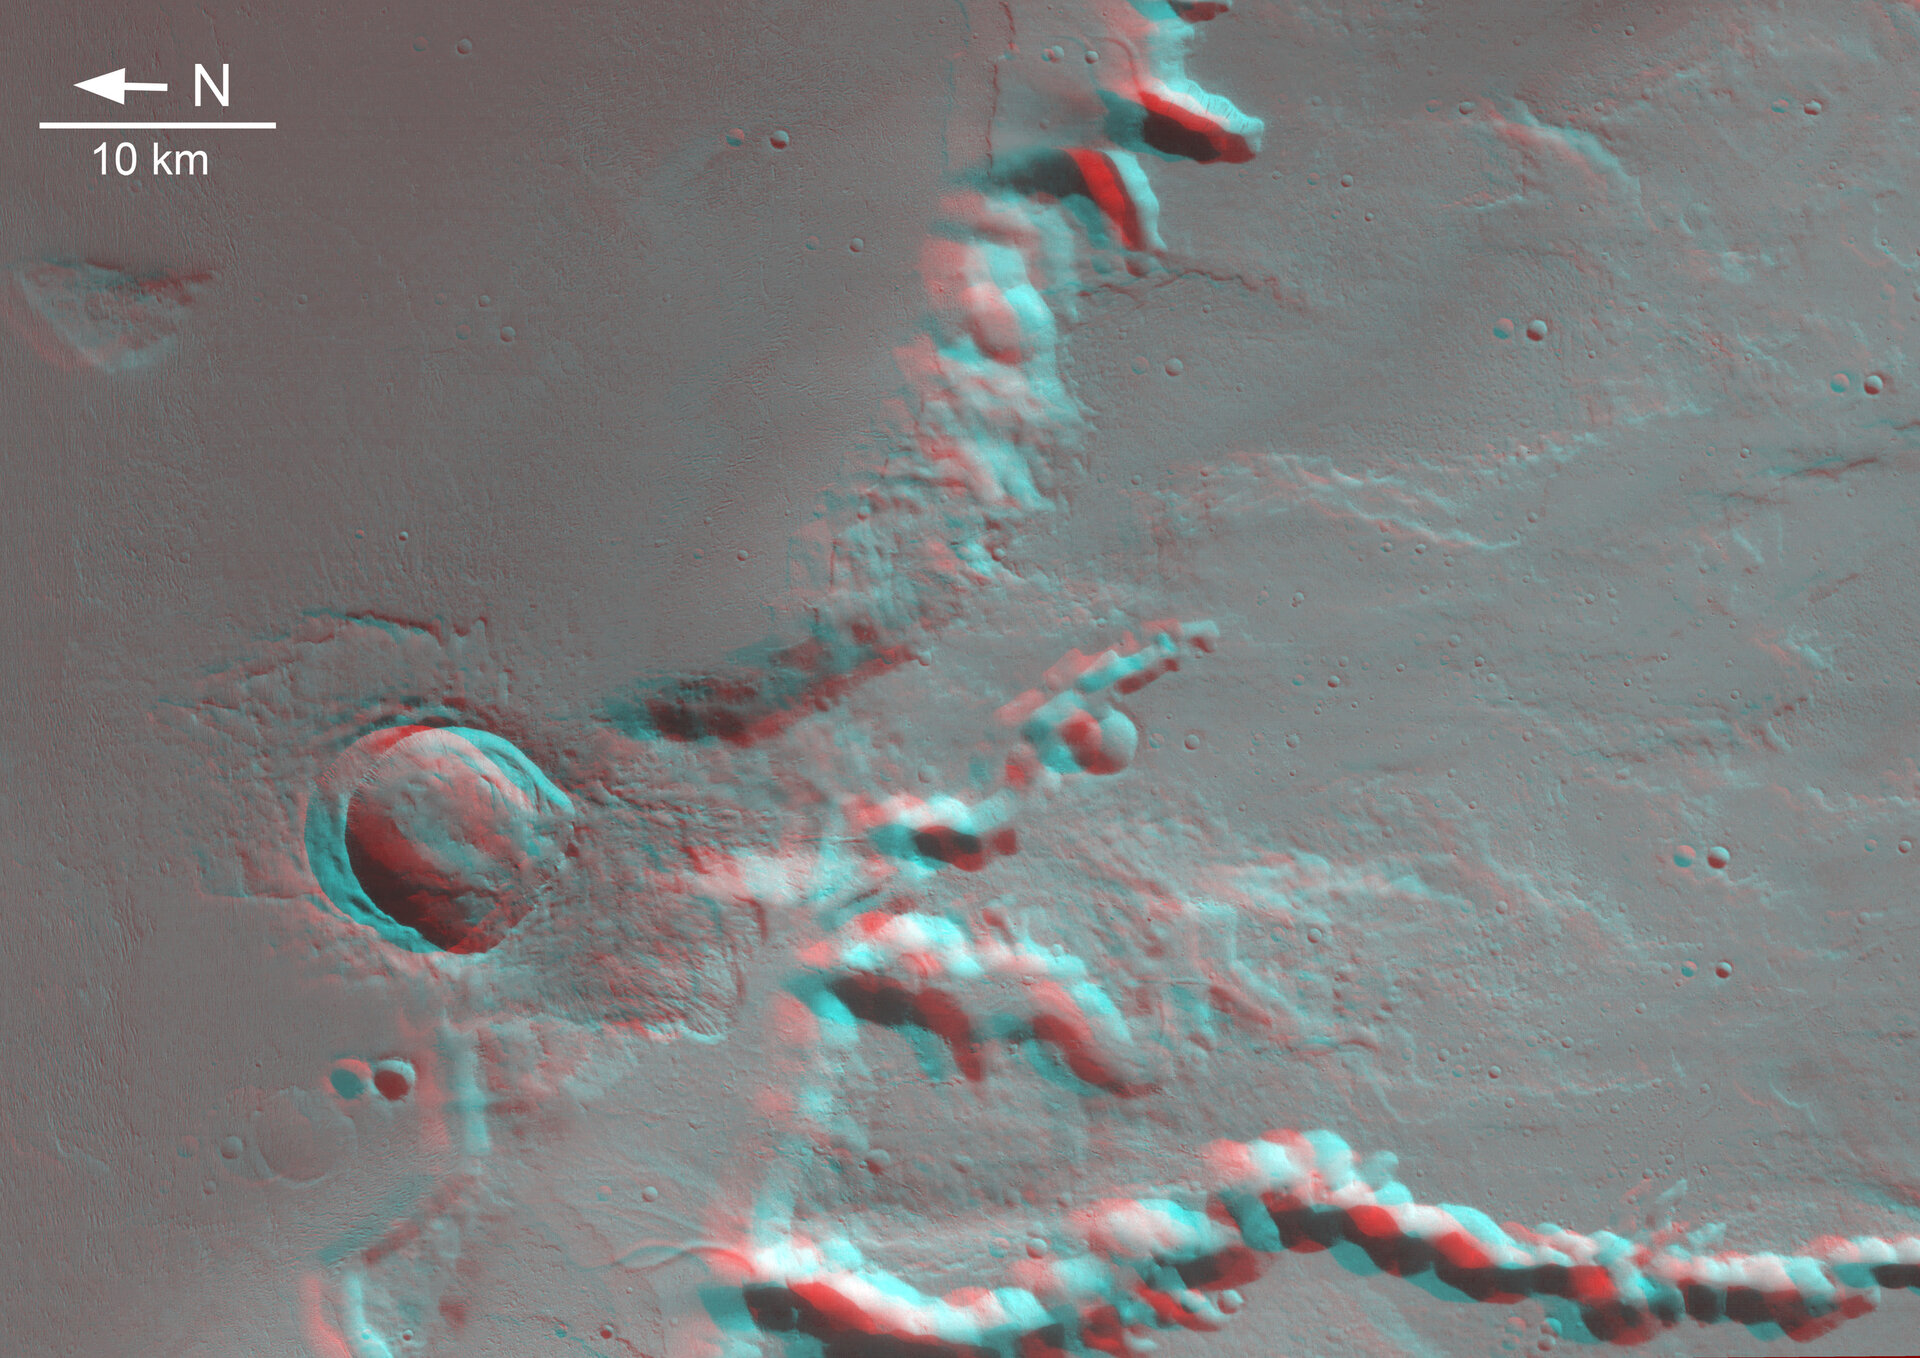 Anaglyph (3D) image of Medusa Fossae